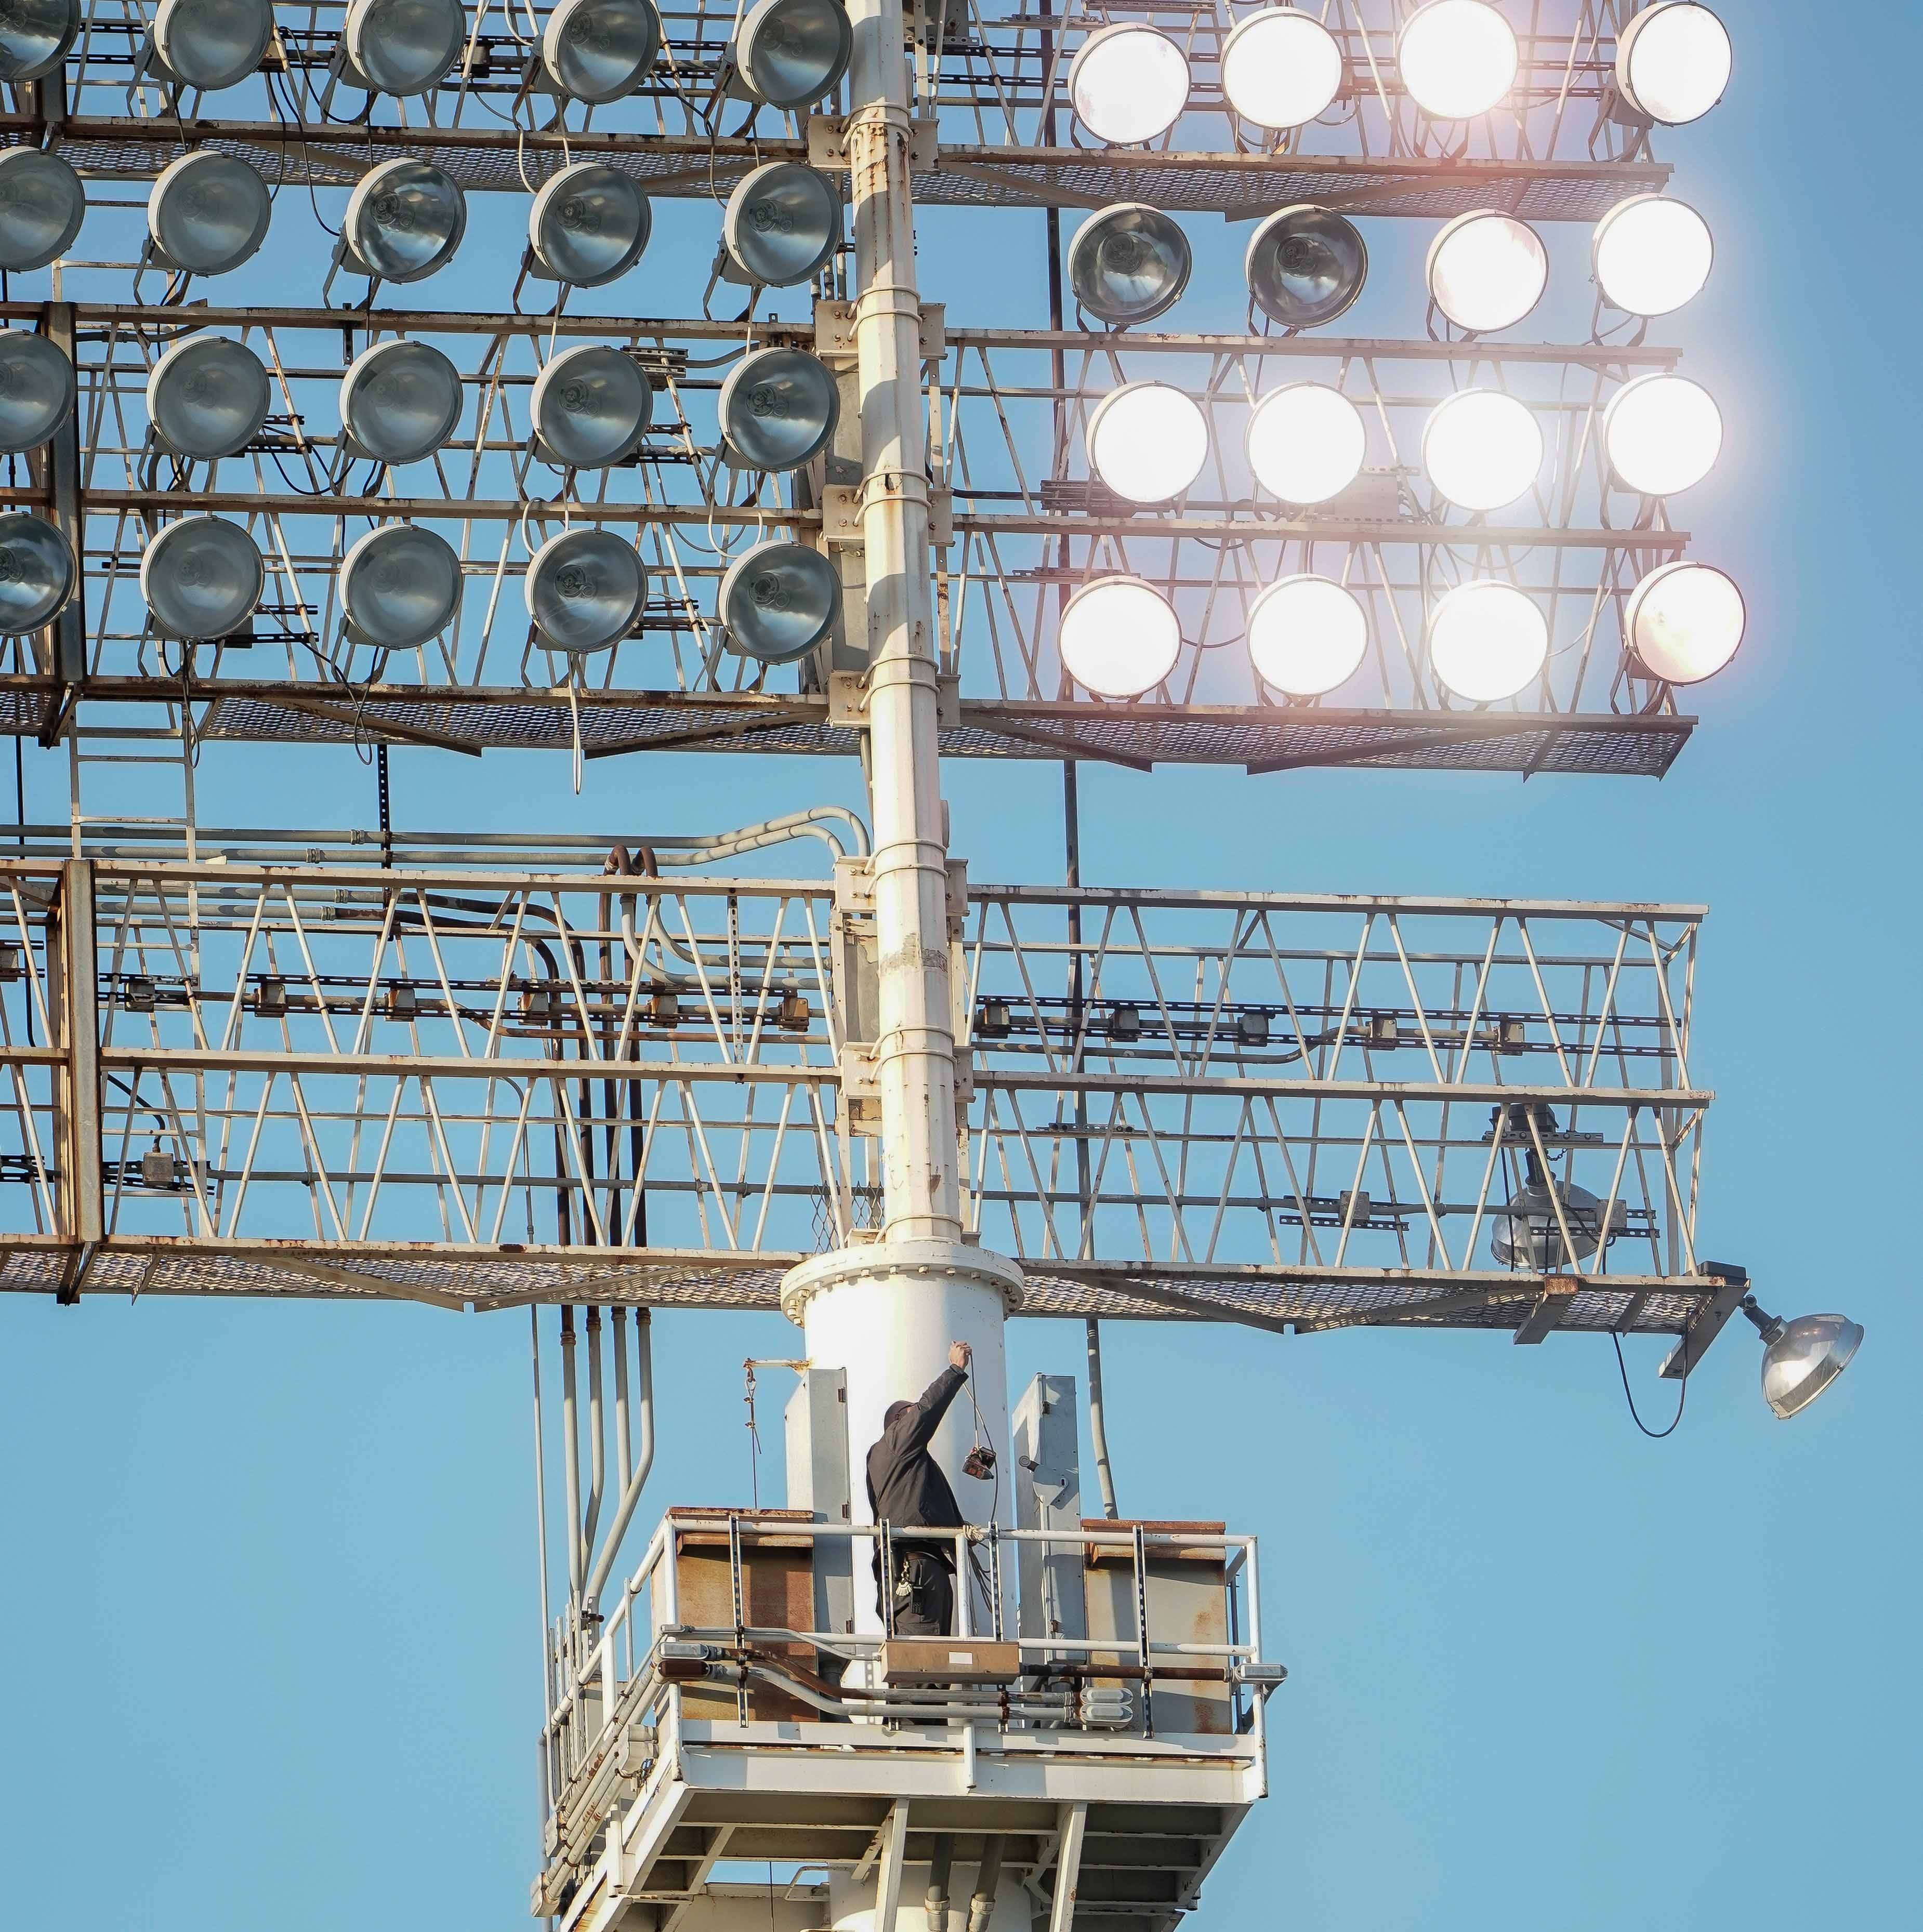 Cincinnati Reds-Oakland A's delayed 98 minutes because of a lighting malfunction